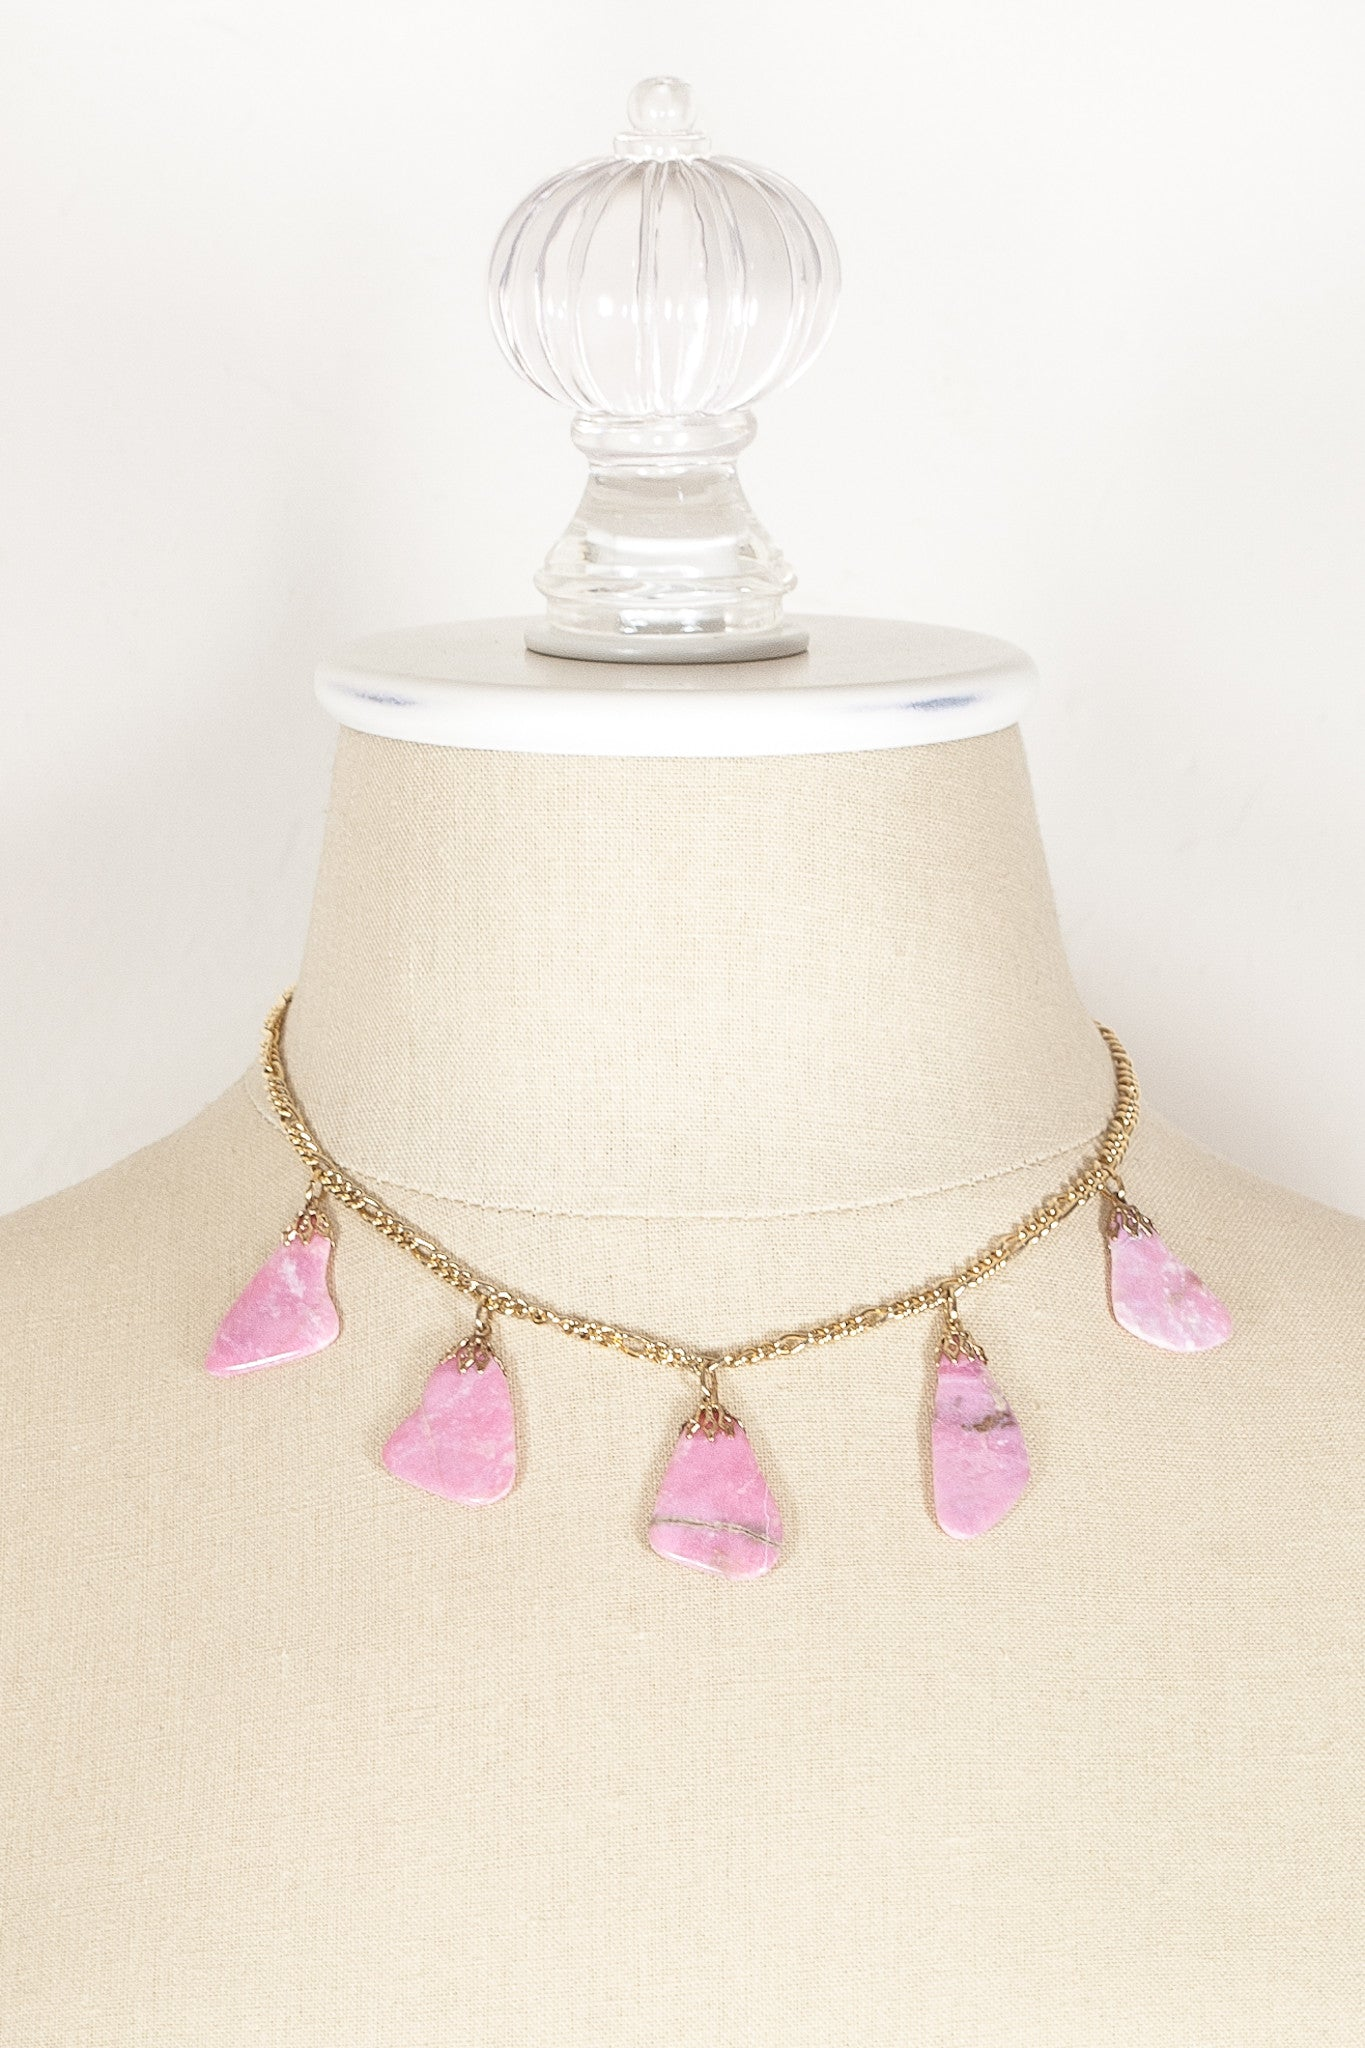 70's__Vintage__Rose Stone Charm Necklace